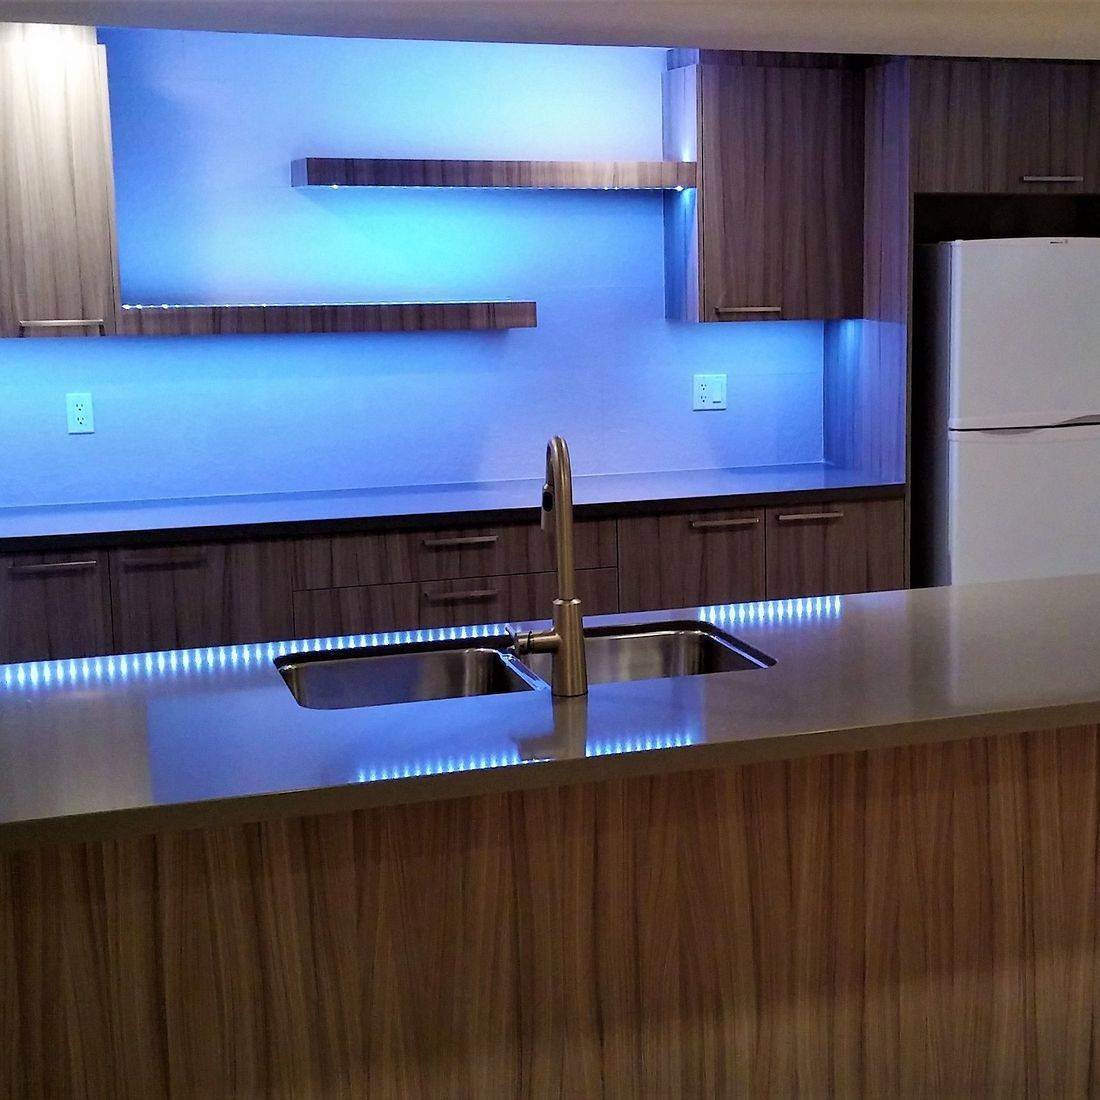 Sibra Kitchens Markham Toronto cabinets basement bar